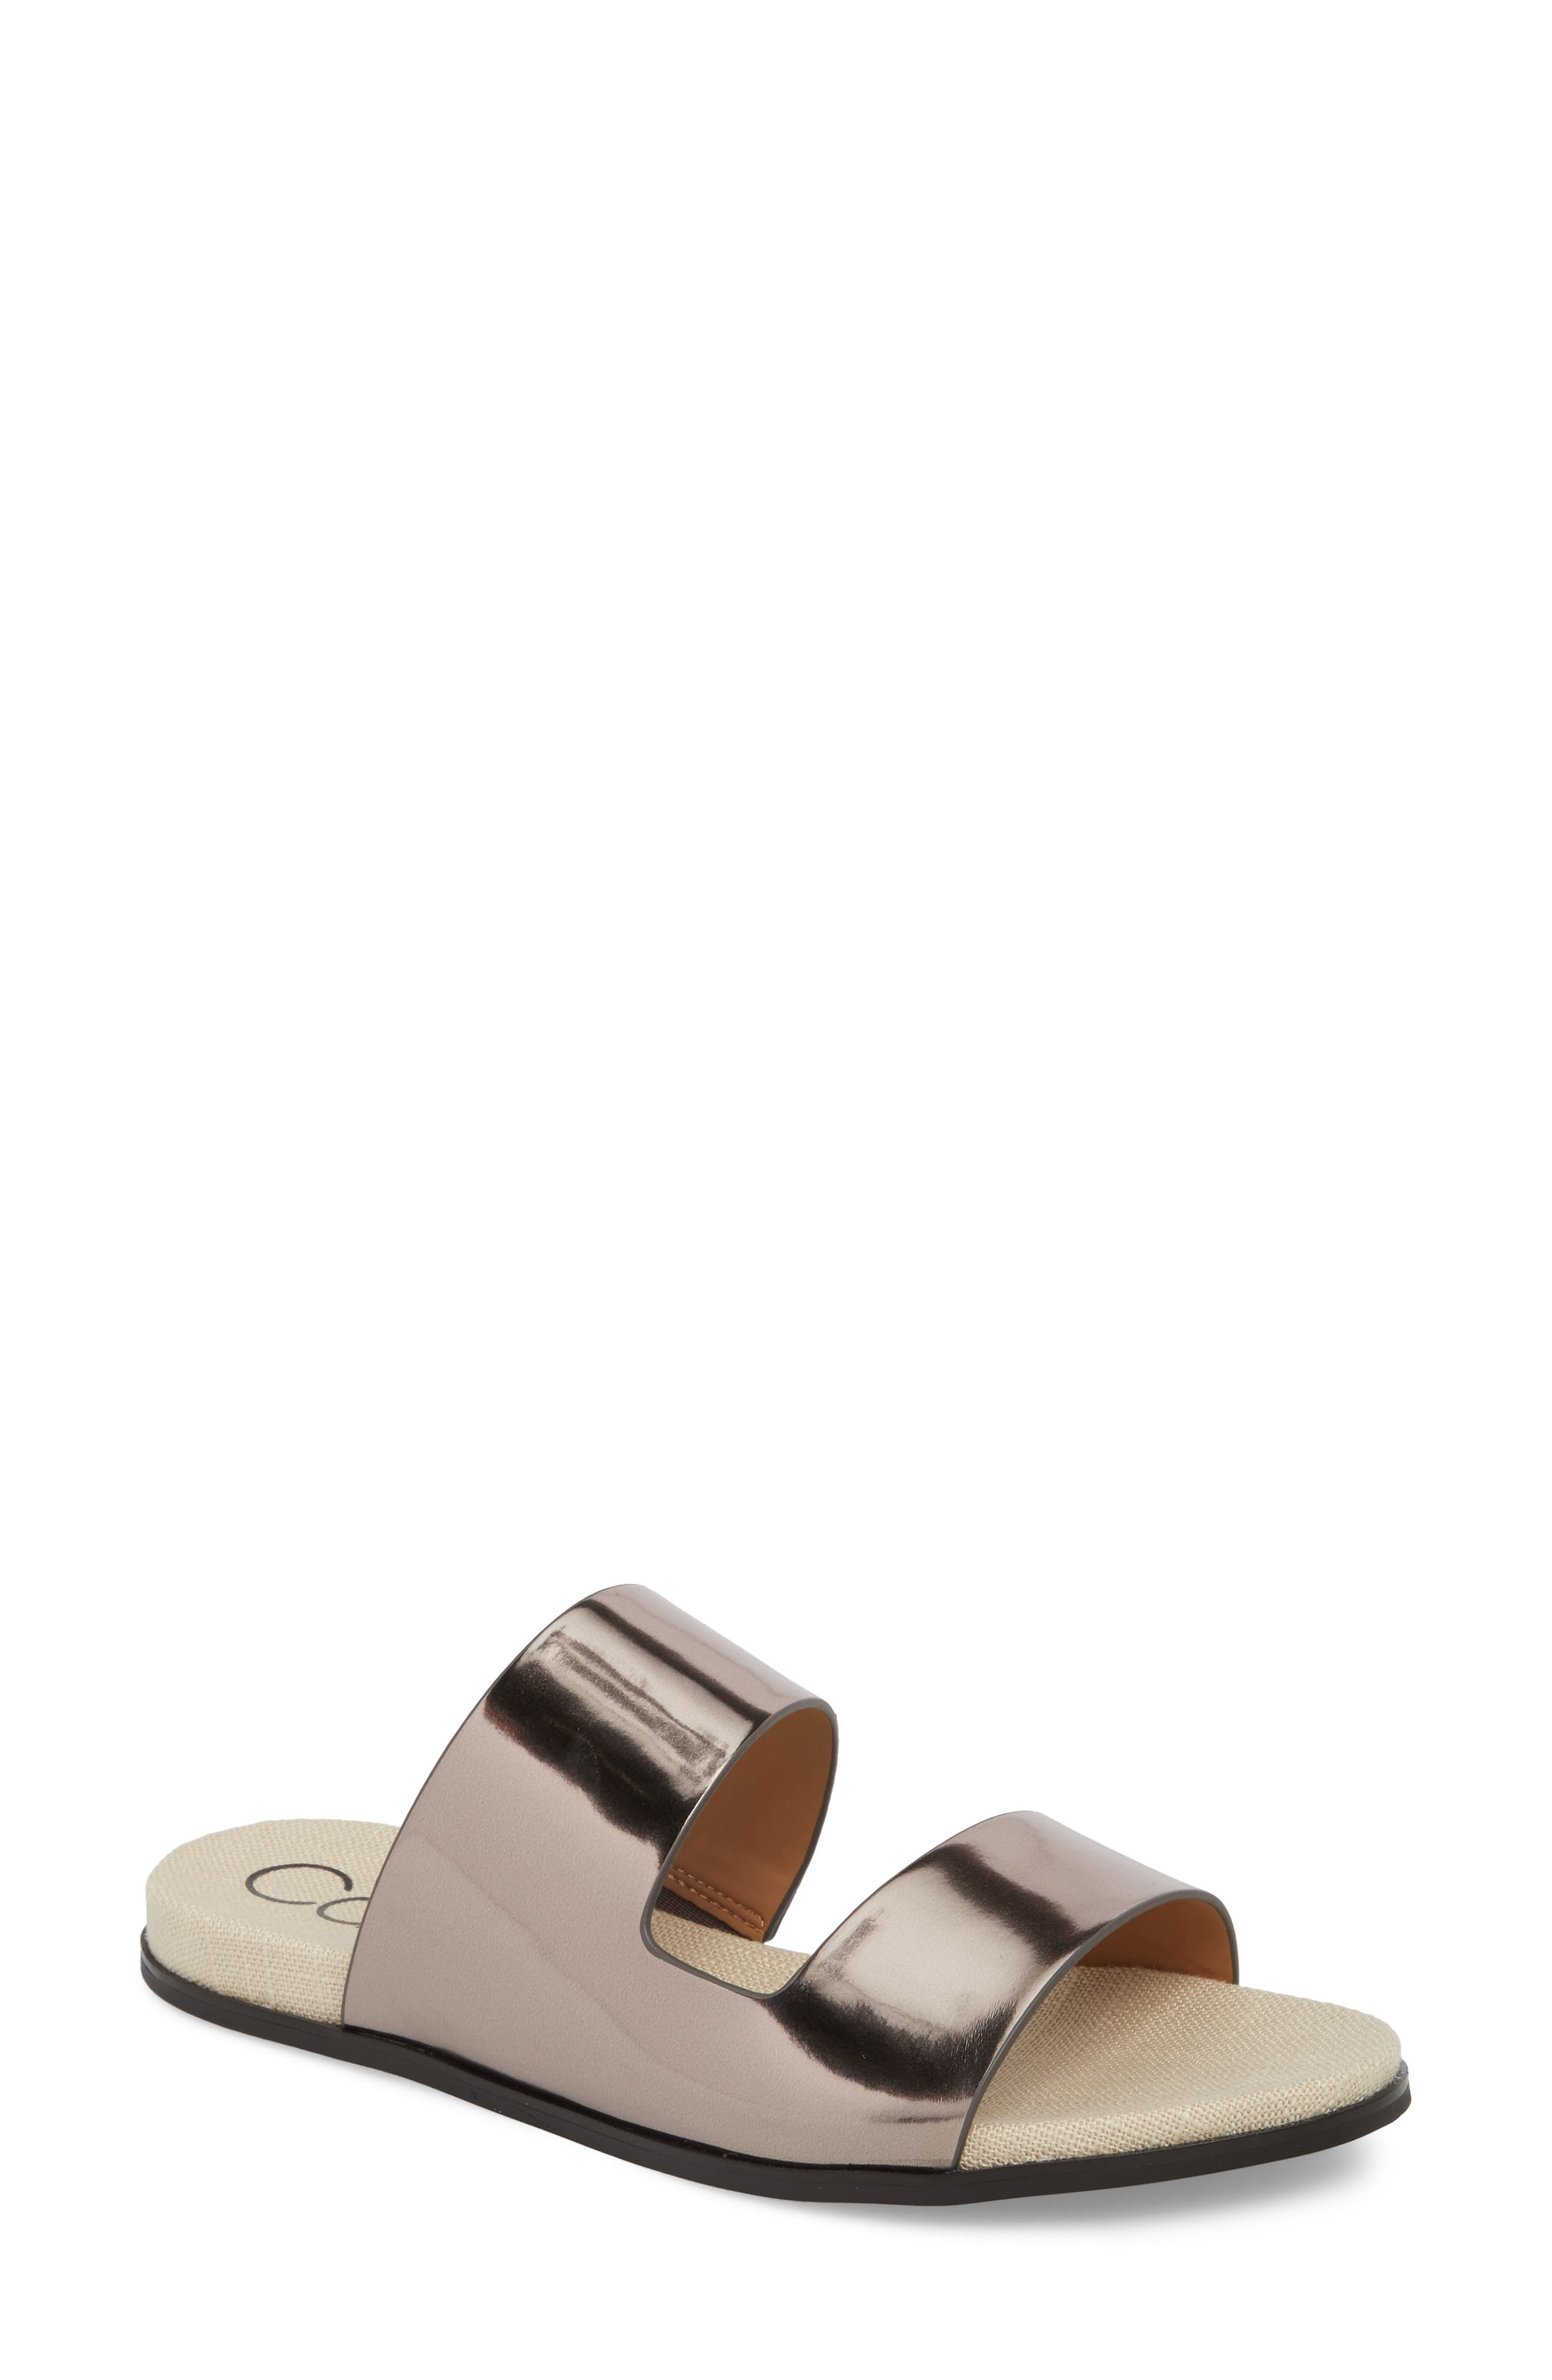 Posey Slide Sandal,                             Main thumbnail 1, color,                             Pewter Leather